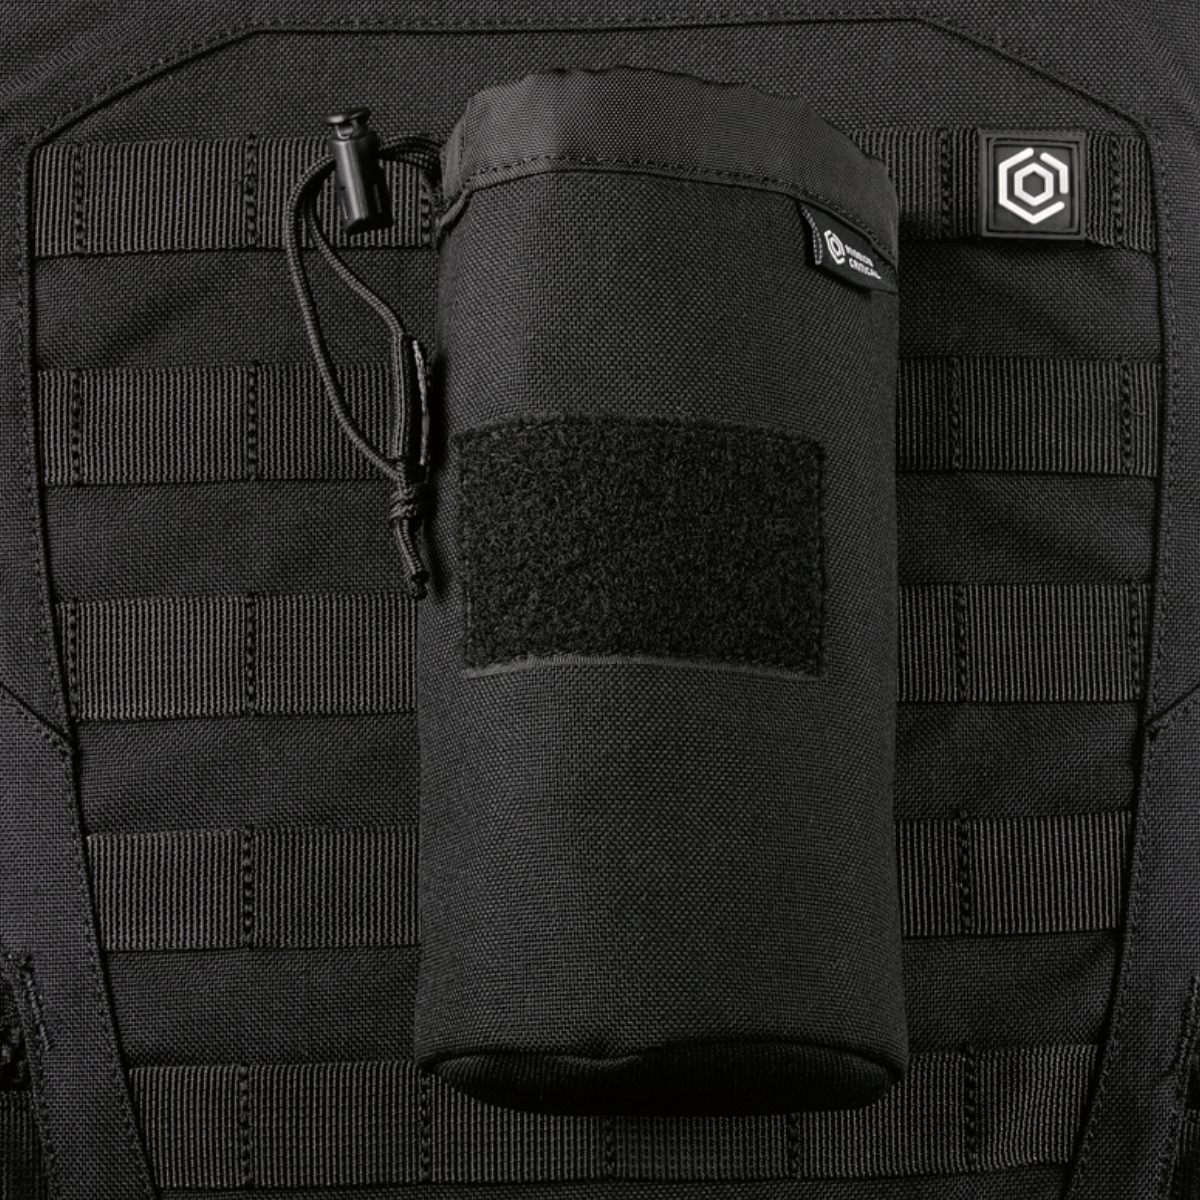 S.01 Action Insulated Bottle Holder